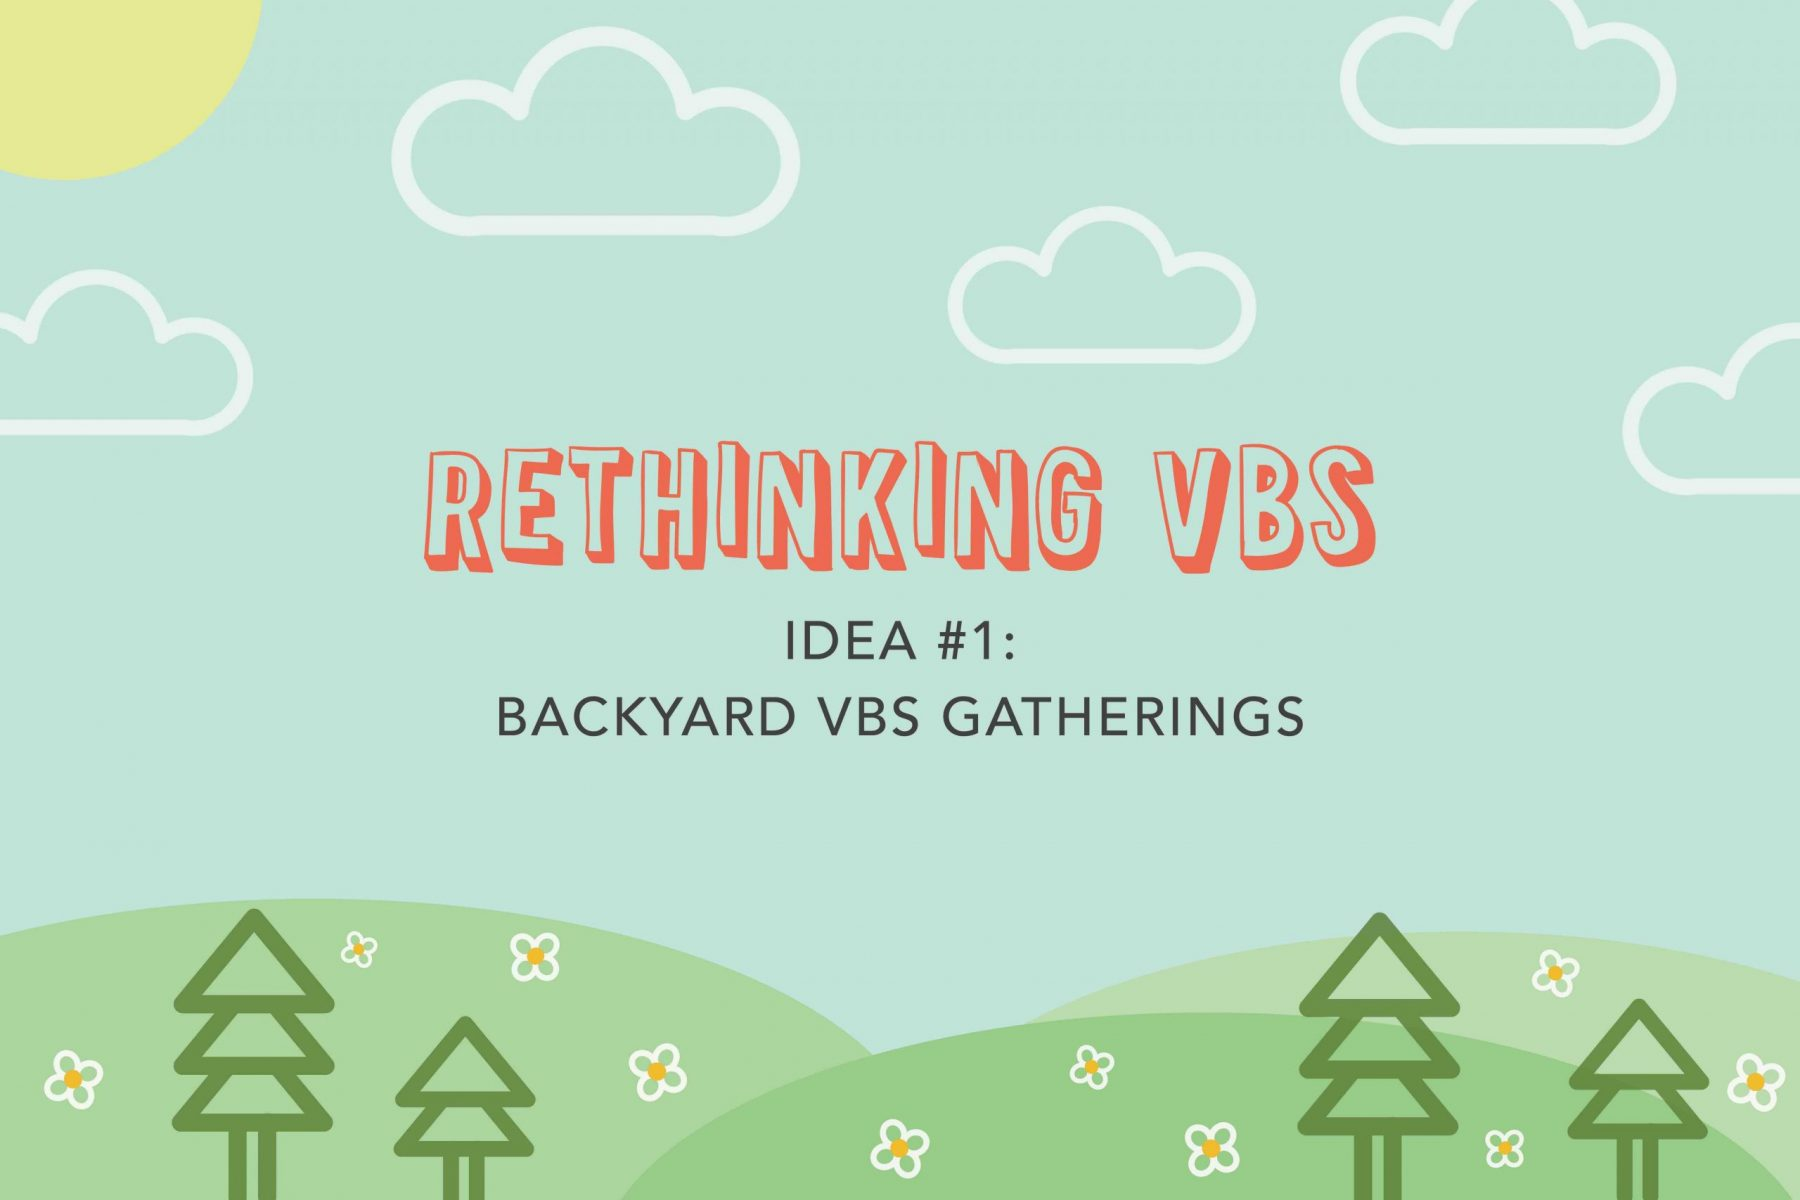 Backyard VBS fun and ideas